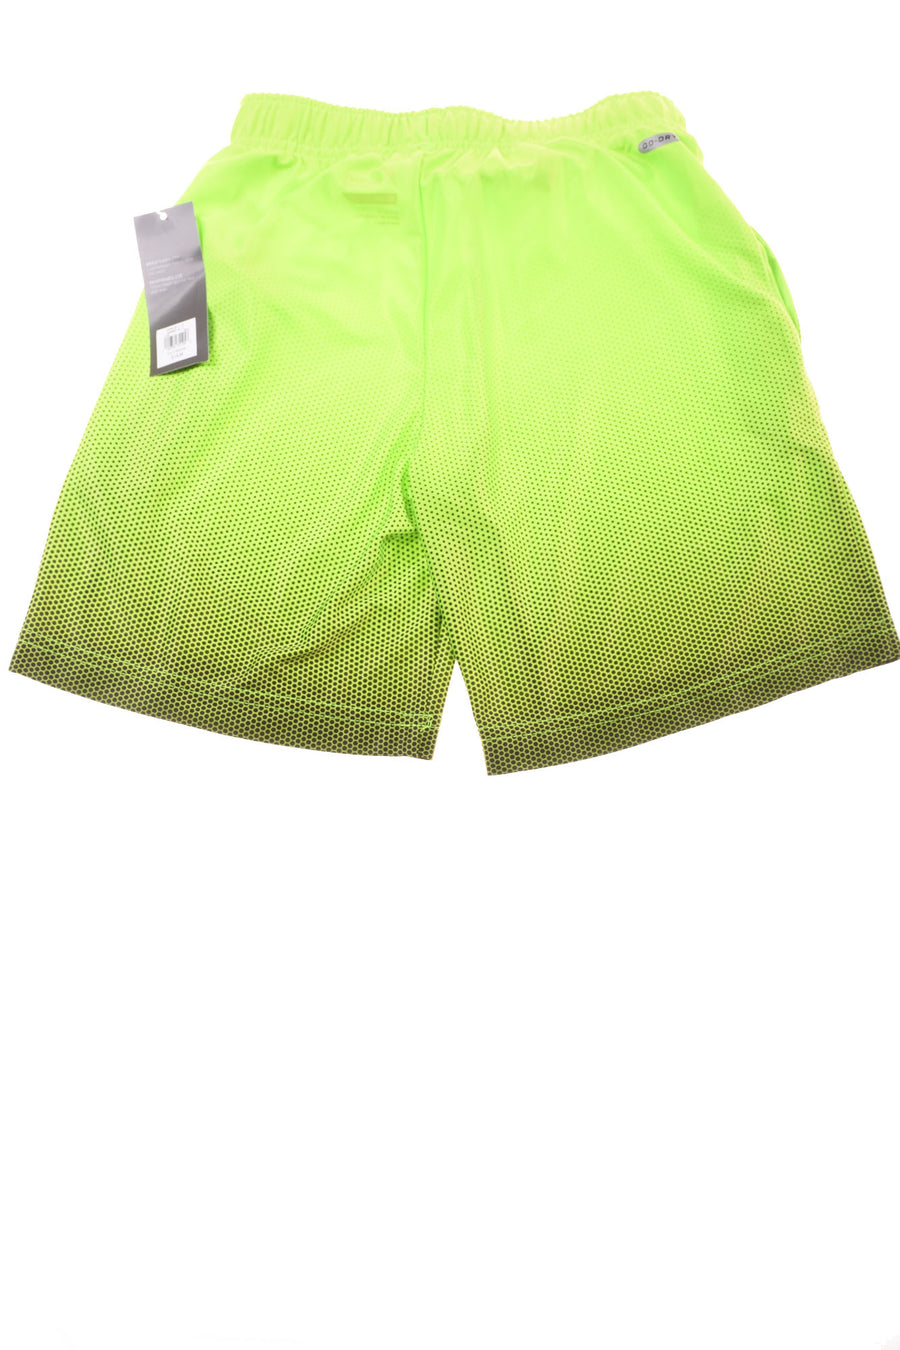 NEW Old Navy Boy's Shorts Small Yellow & Black